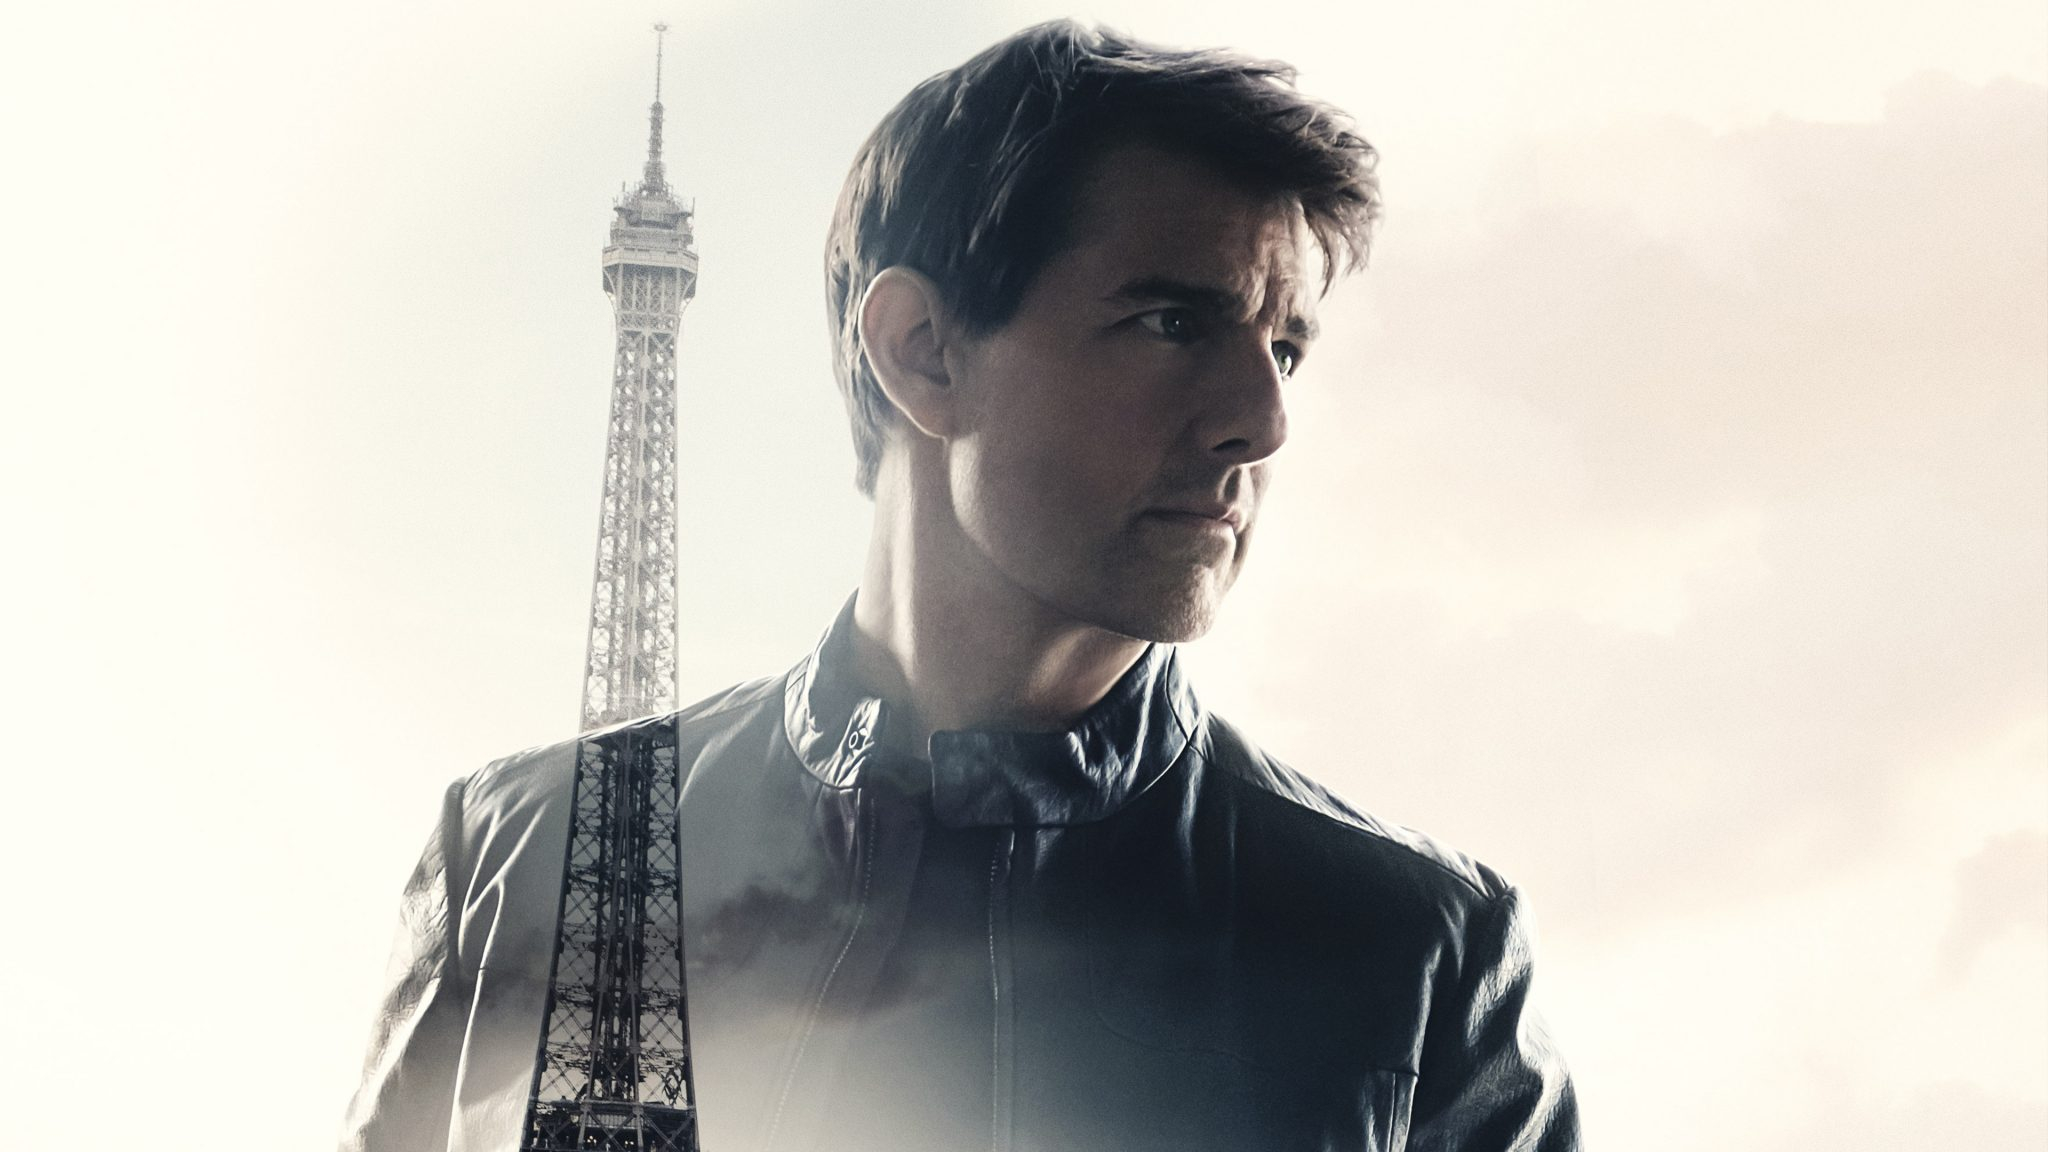 Tom cruise mission impossible fallout 4k wallpaper - Mission impossible wallpaper ...